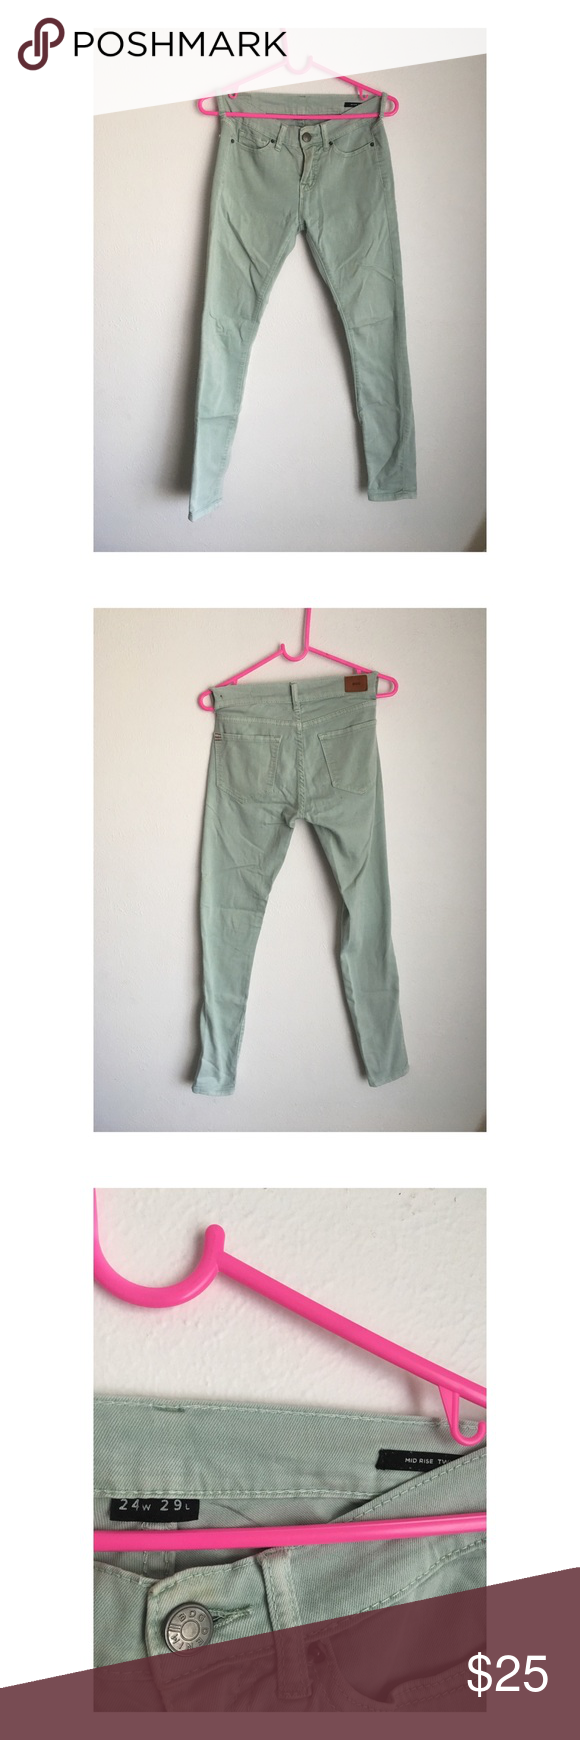 Green Mint skinny jeans urban outfitters pictures pictures